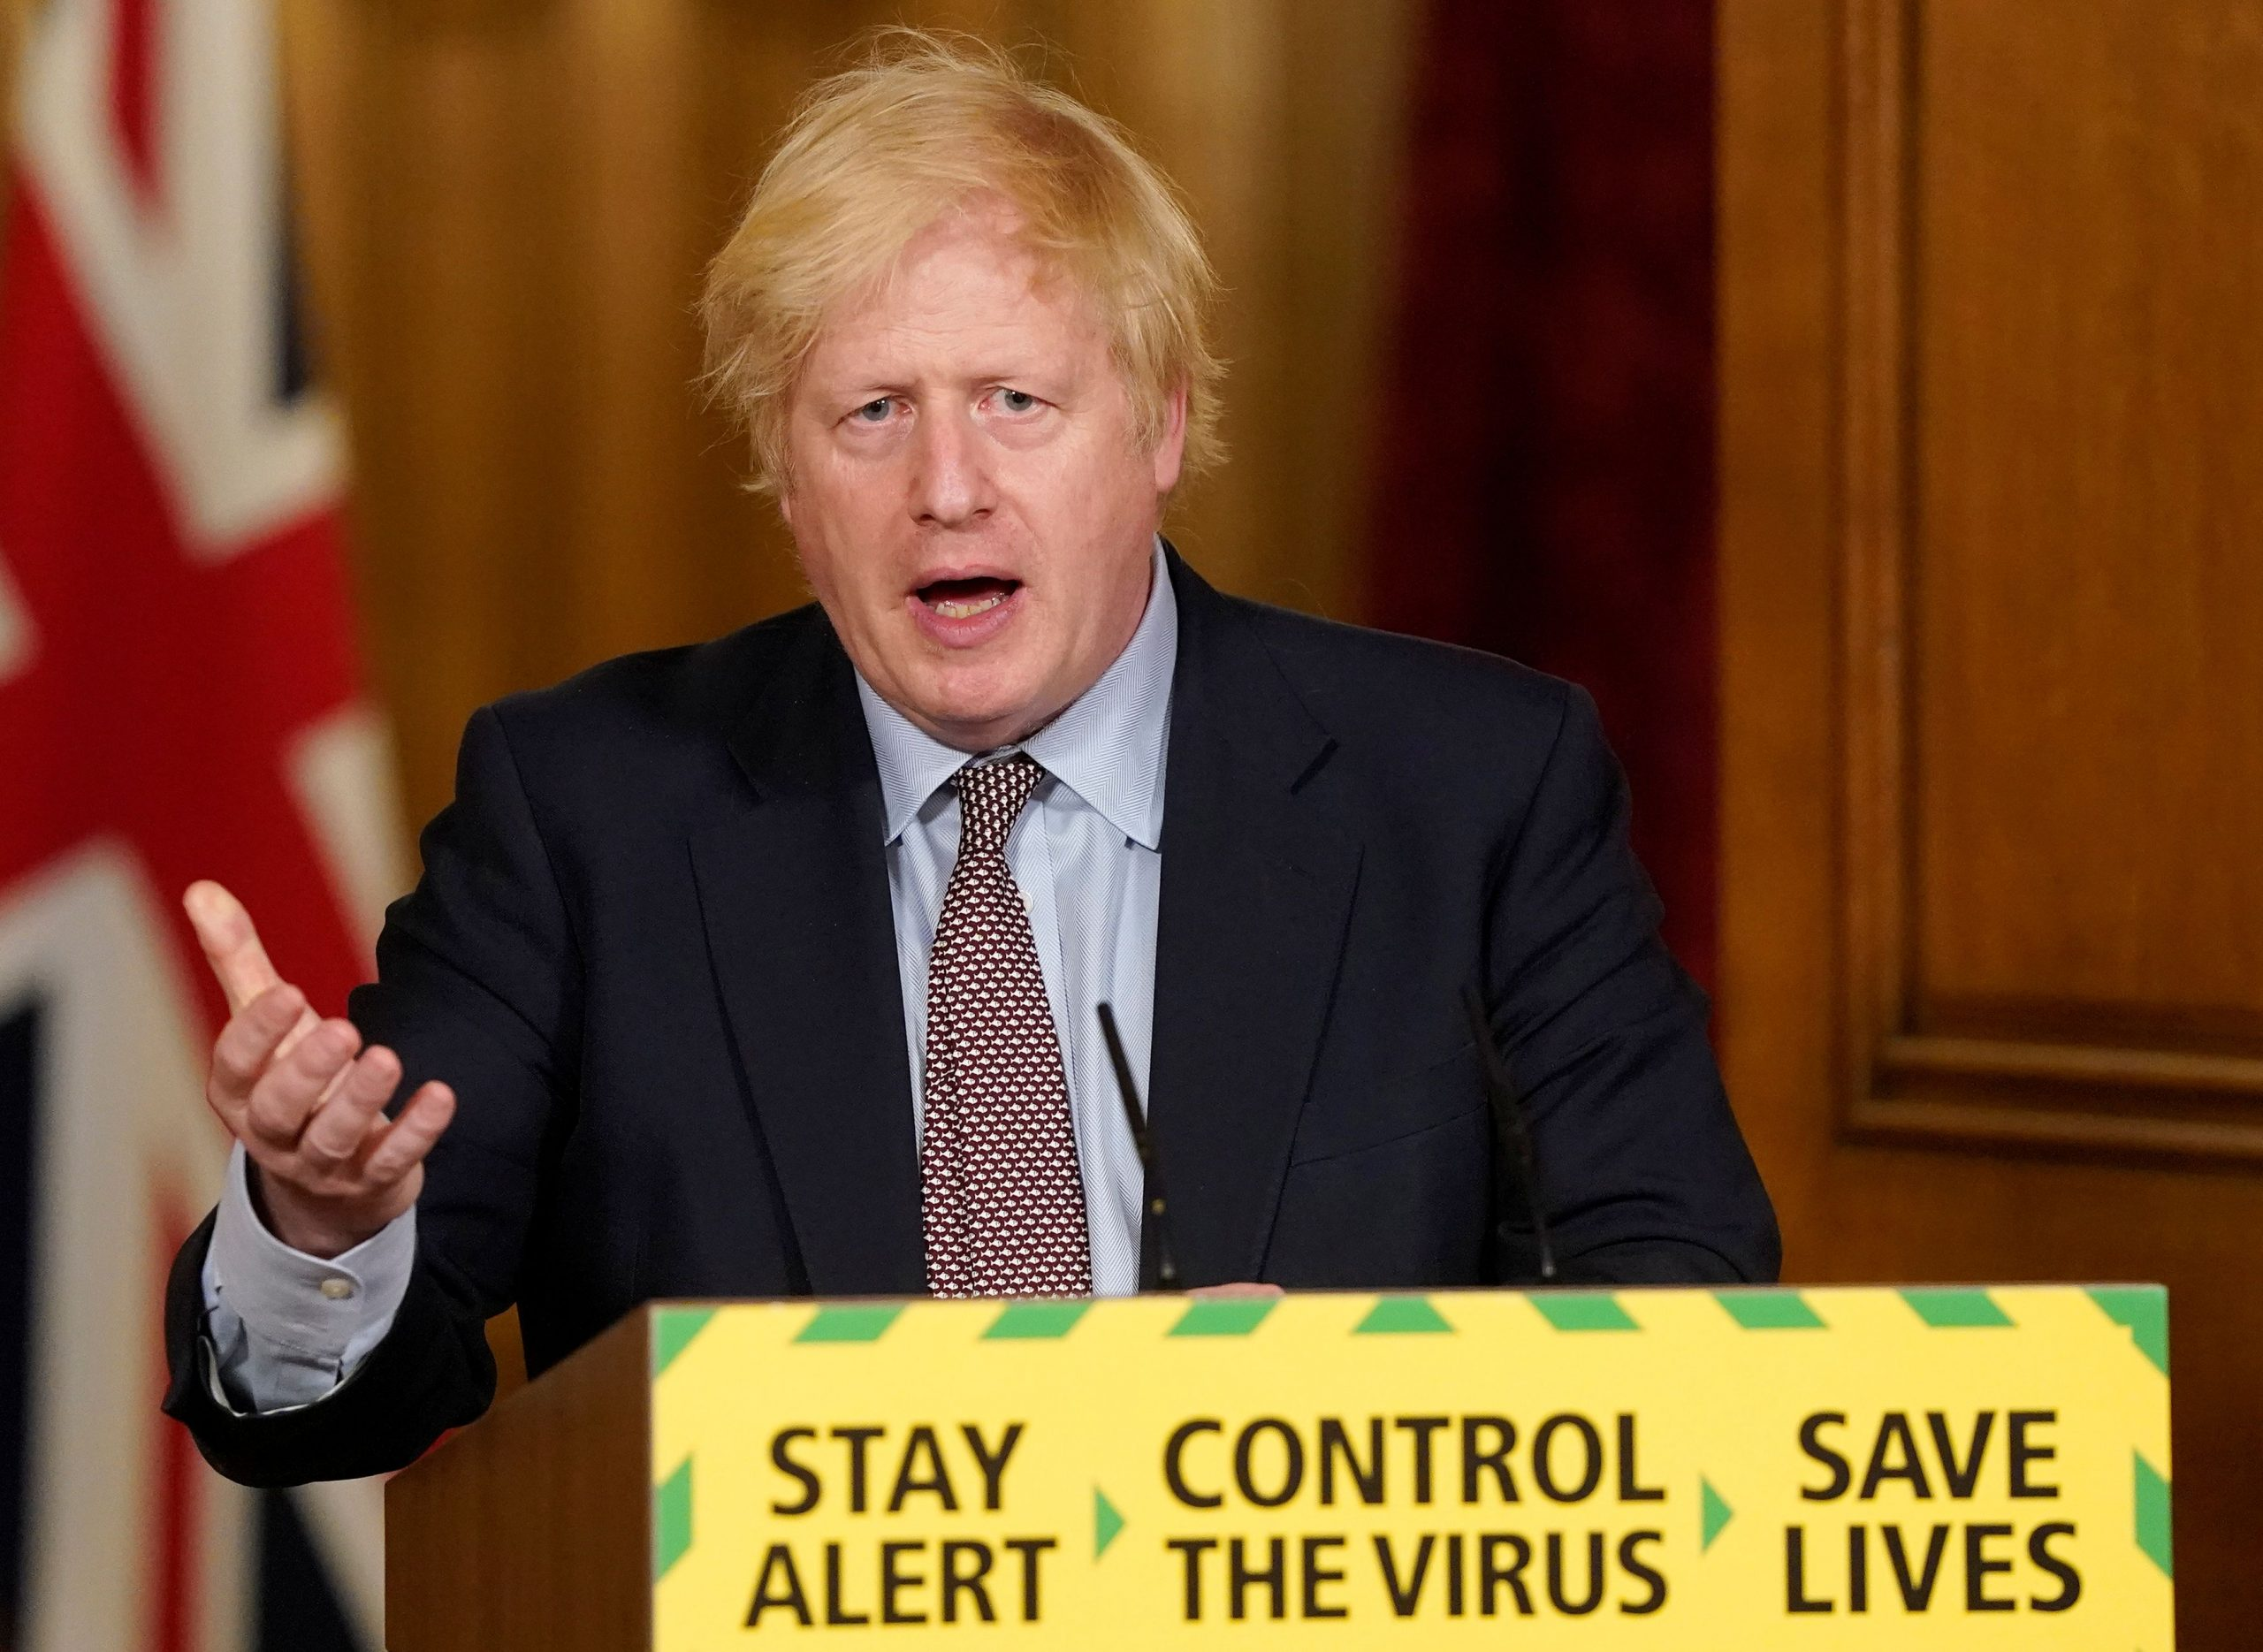 Boris Johnson / Reuters